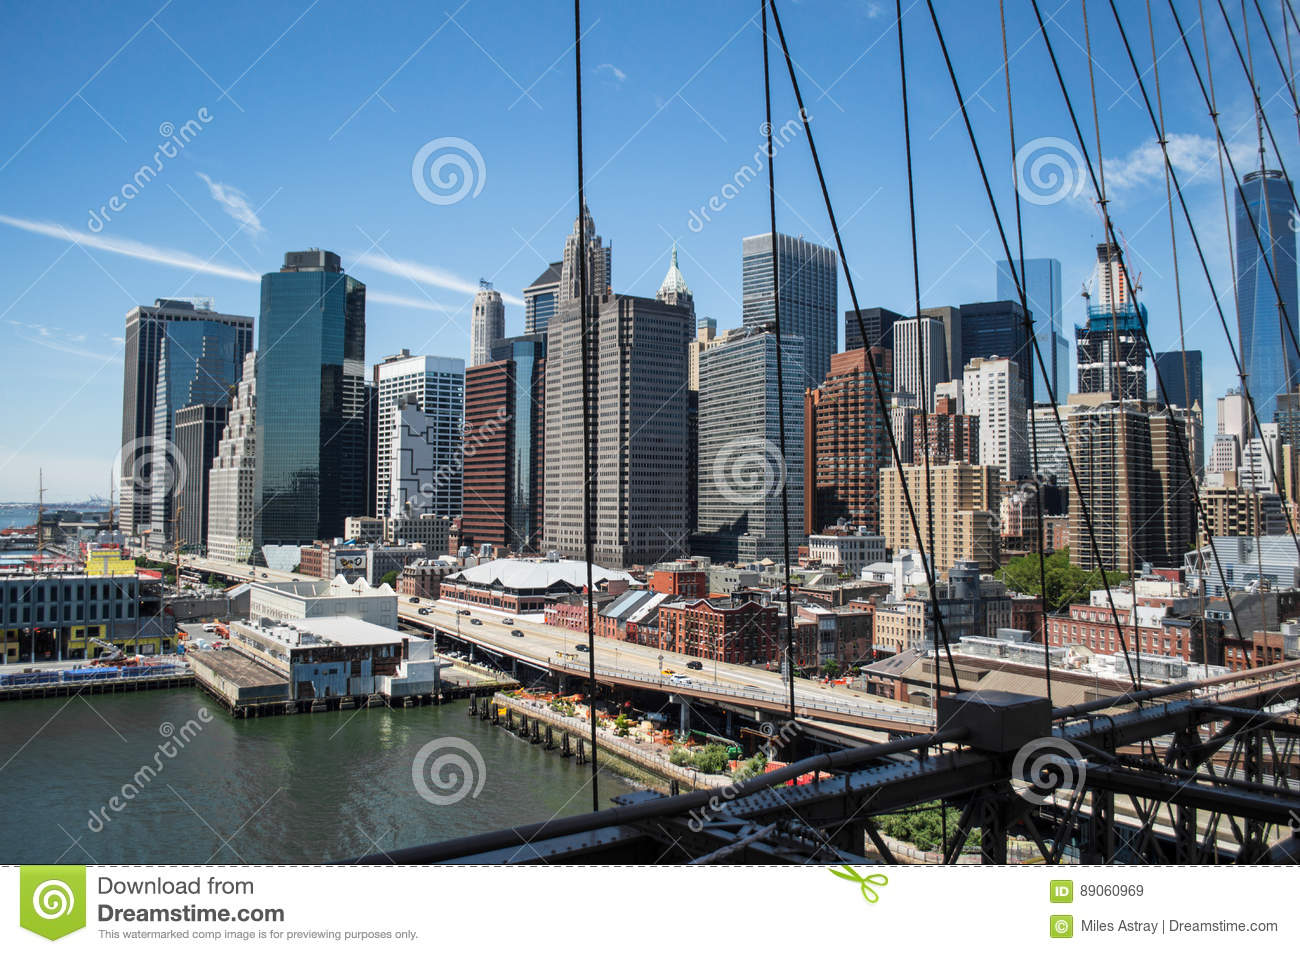 Brooklyn Bridge, One World Trade Center and Financial District: Summer in Manhattan